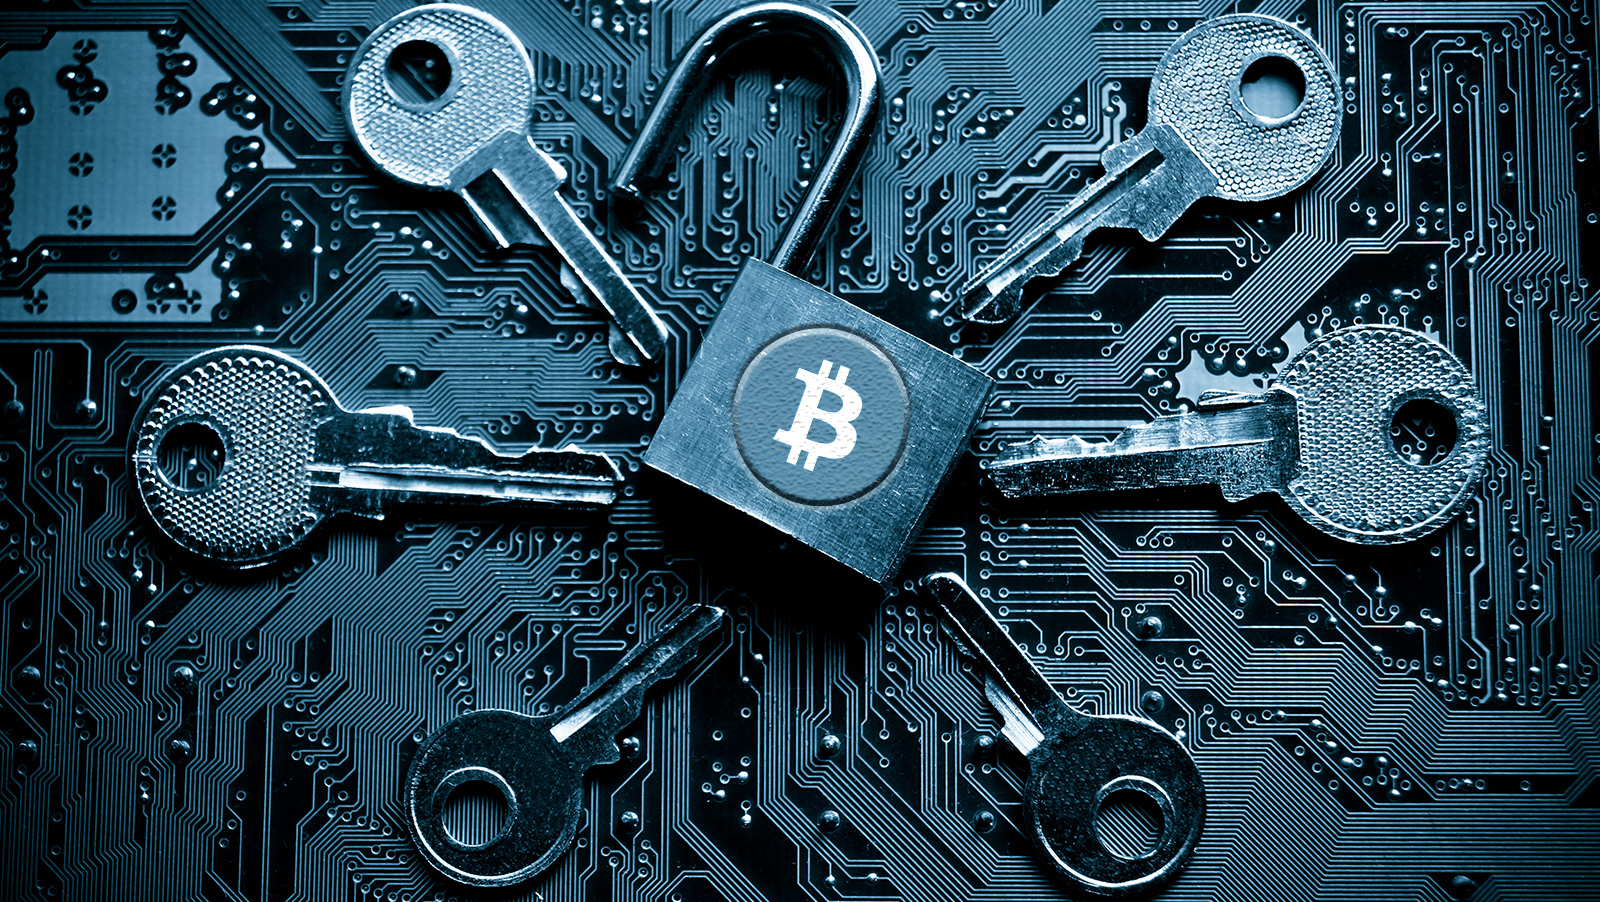 Bitcoin exchange BTC-e falls victim to DDoS attack - CalvinAyre.com